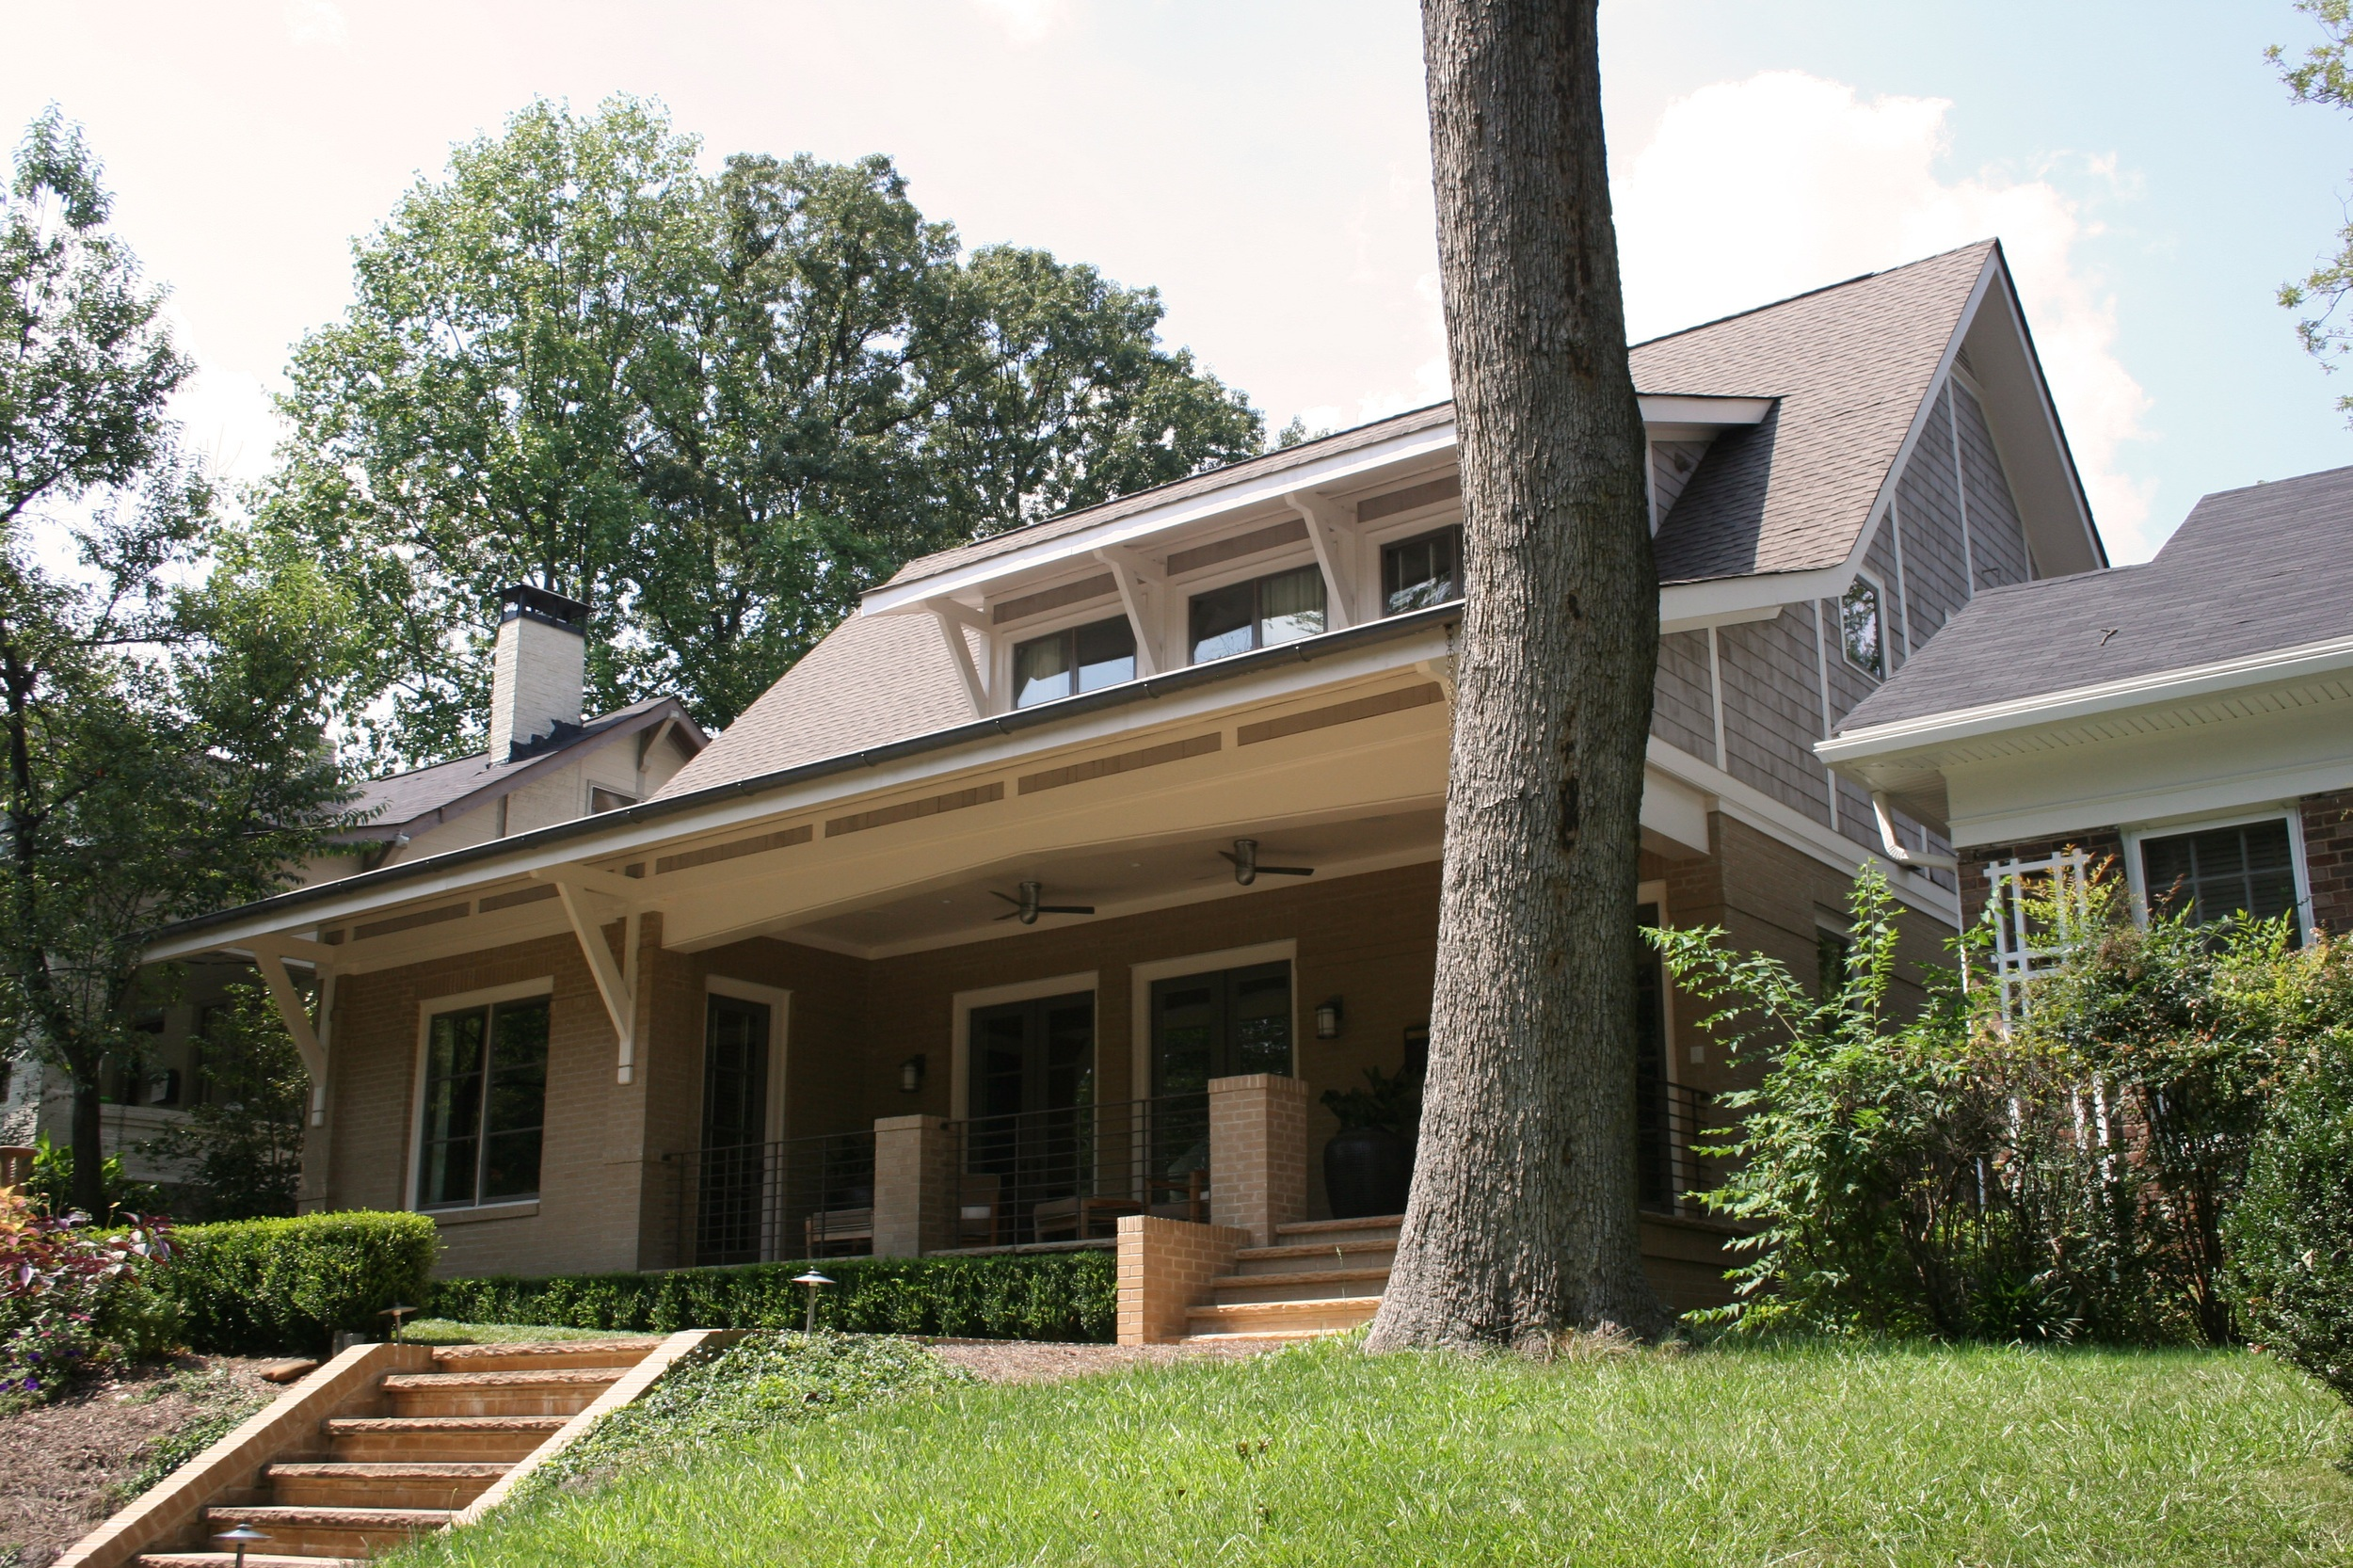 New home in the Virginia Highlands neighborhood of Atlanta. The home is designed to fit into it's surroundings through it's careful massing and detailing. It's spare modern details on the exterior elude to it's soft modern interior featuring all natural materials applied in a contemporary manner. Featured on HGTV in 2007 and Atlanta Homes and Lifestyles. Interior Design by Joel Kelly Design Studio. Landscape Architecture by David Bennett. Project completed while employed as a Project Manager with Joel Kelly Design.